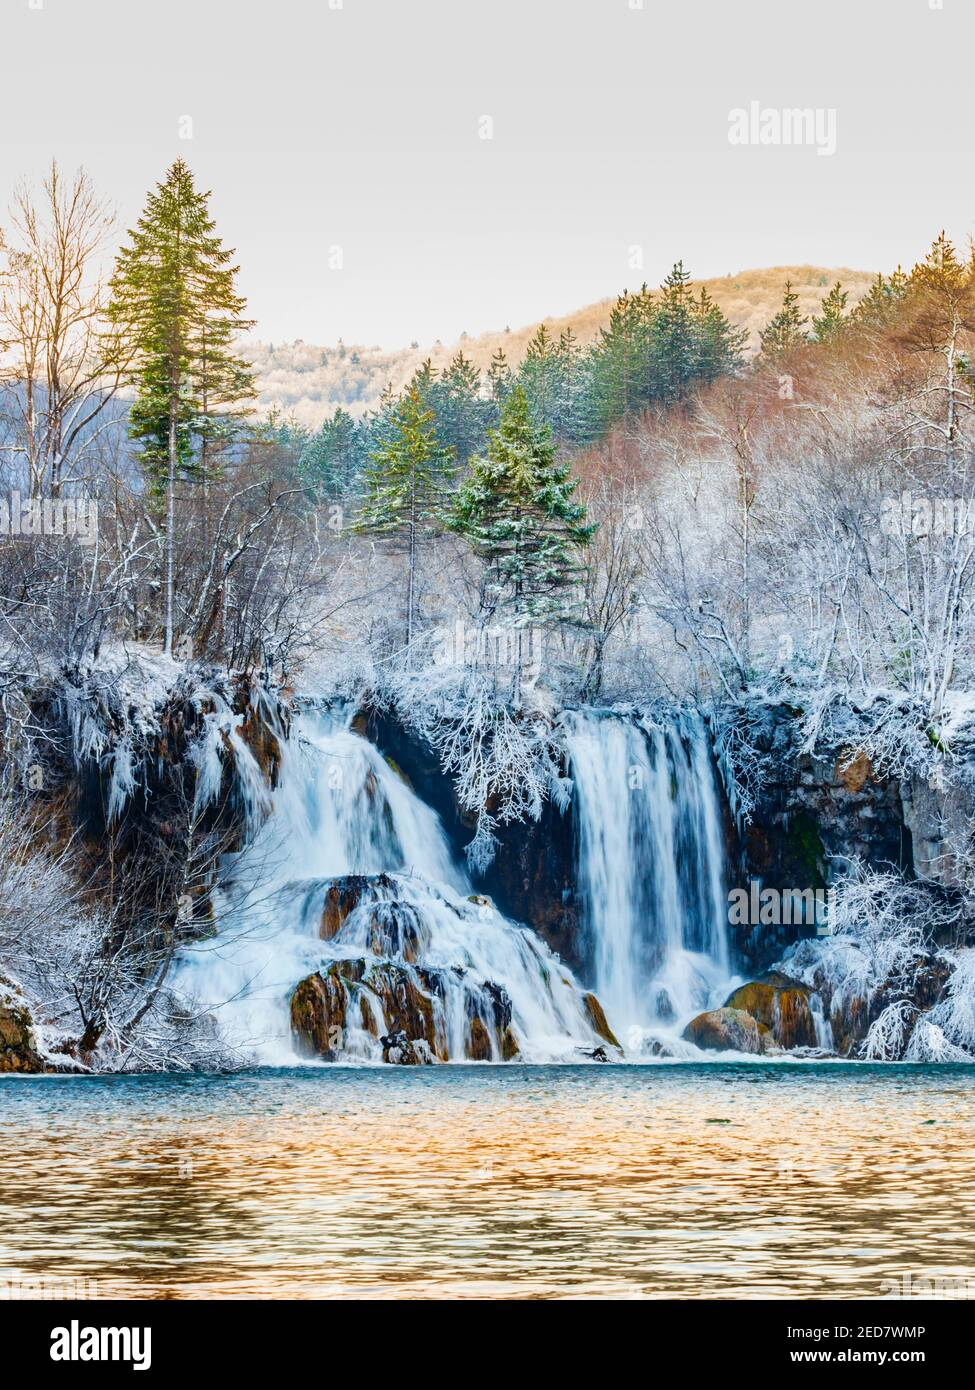 Morning warm light waterfalls waterfall national park Plitvice lakes Croatia Europe Winter under covered cover snow ice waterflow water flowing flow Stock Photo